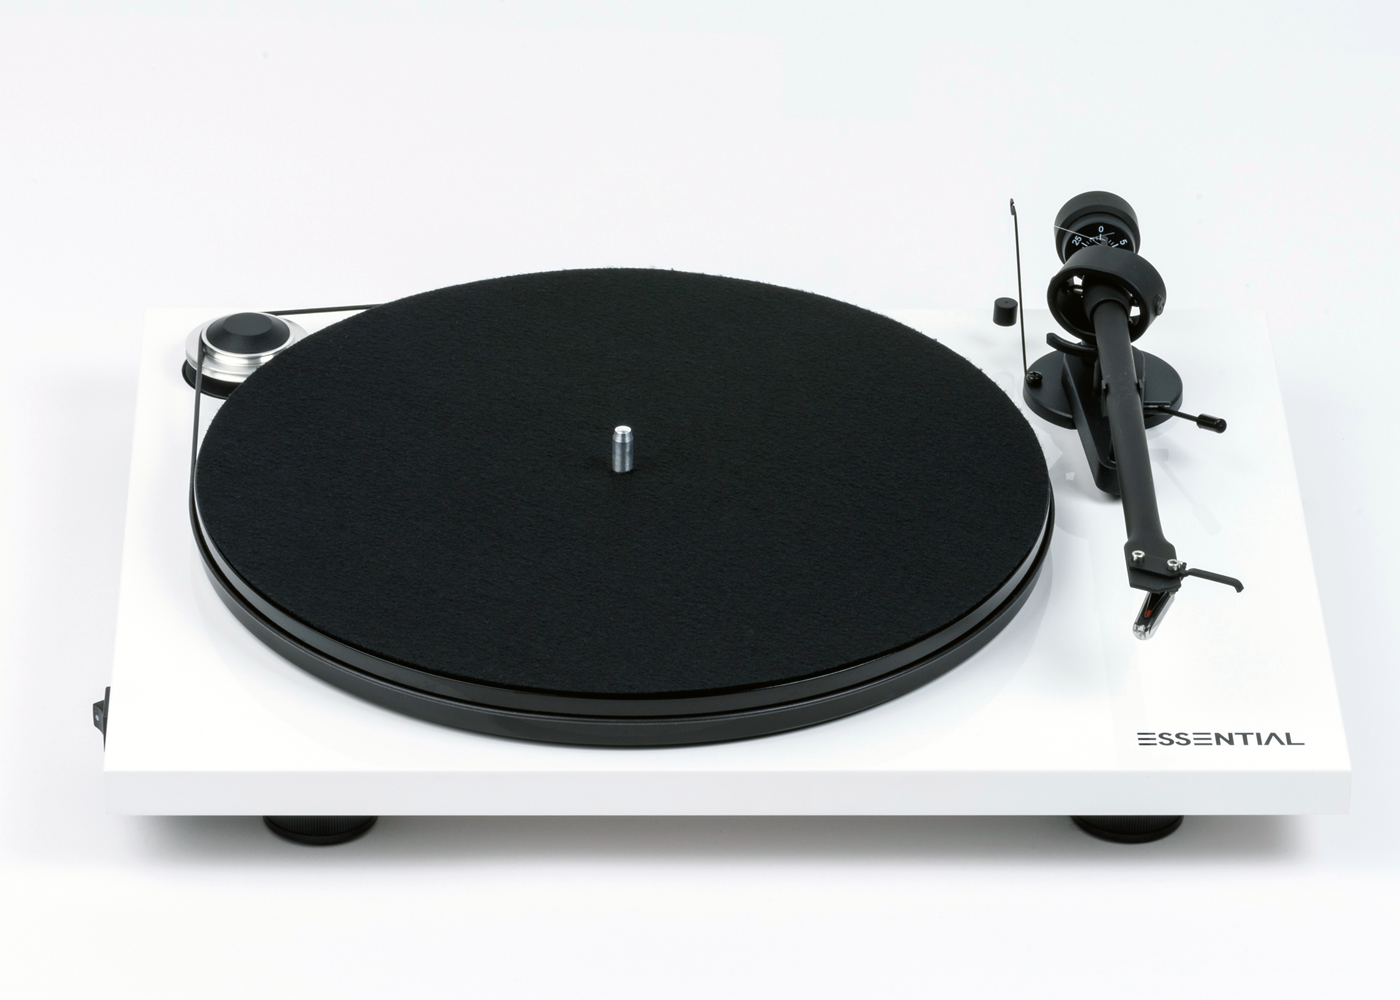 project essential turntable ★pro-ject essential iii bluetooth turntable - gloss red with ortofon om 10e™ ^^ if you want to buy pro-ject essential iii bluetooth turntable - gloss red with ortofon om 10e ok you want deals and save online shopping has now gone a long method it has changed the way consumers a.